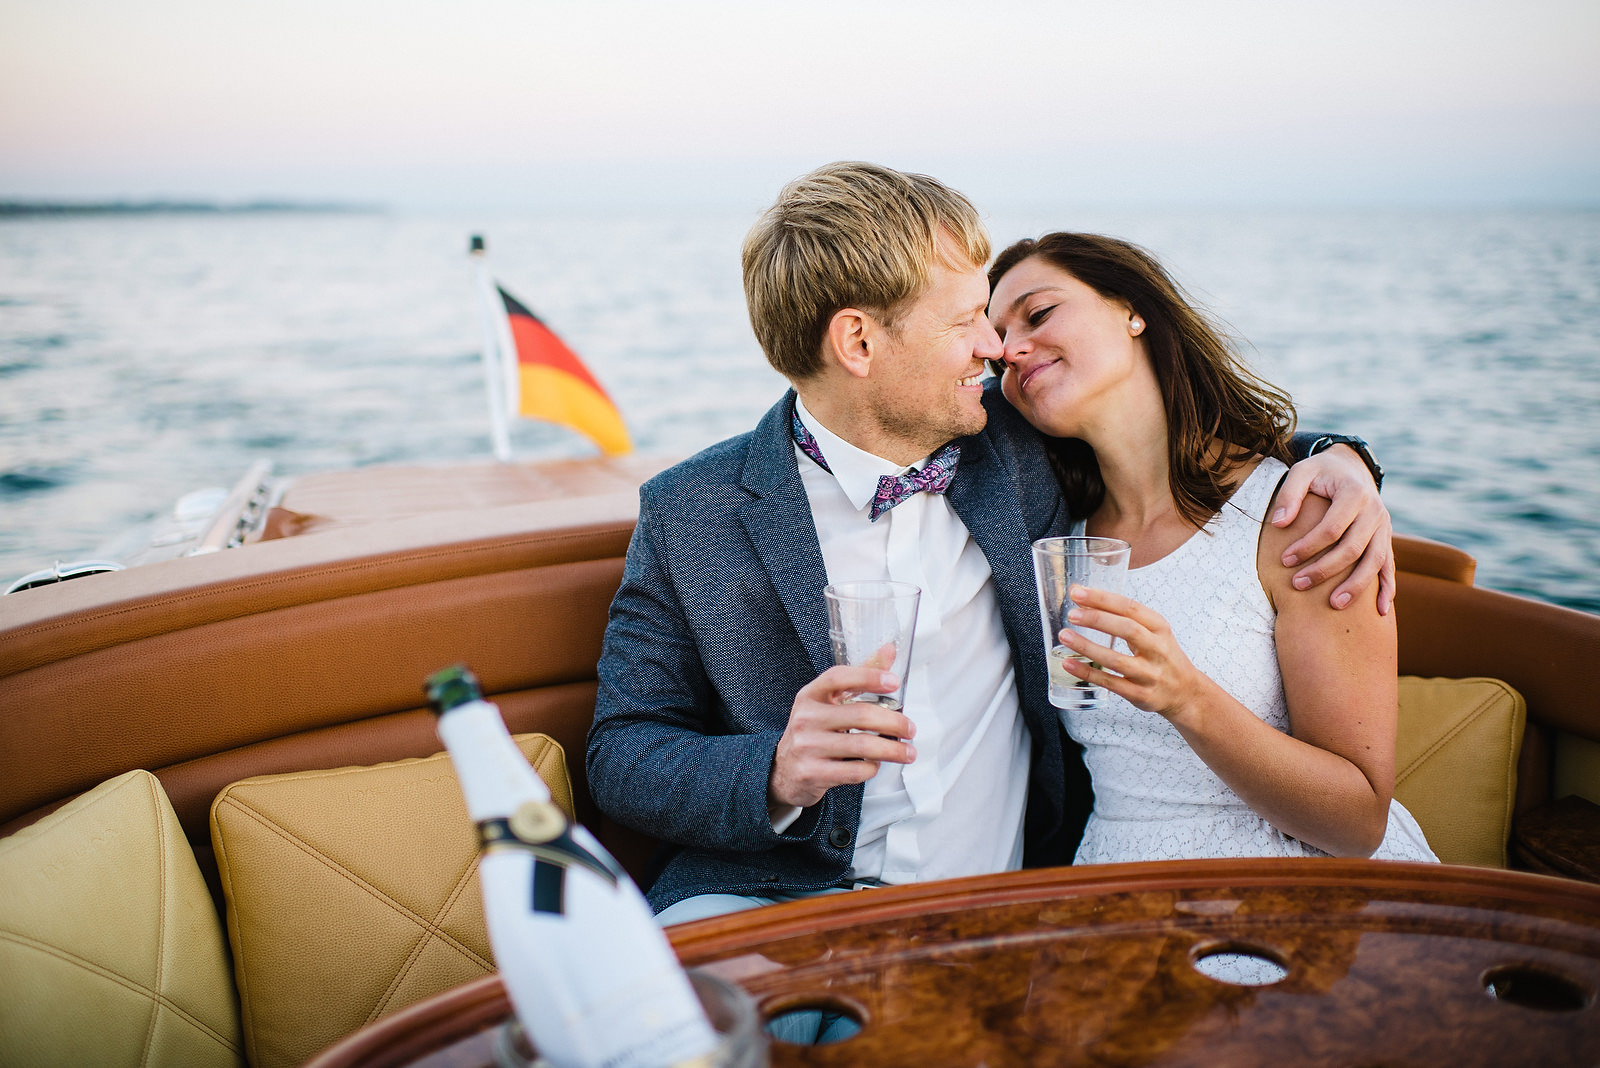 Fotograf Konstanz - Classic Boat Pegiva Shooting Bodensee Hochzeit Erlebnis EFP 42 - Experience a Pegiva boat shooting on Lake Constance  - 16 -